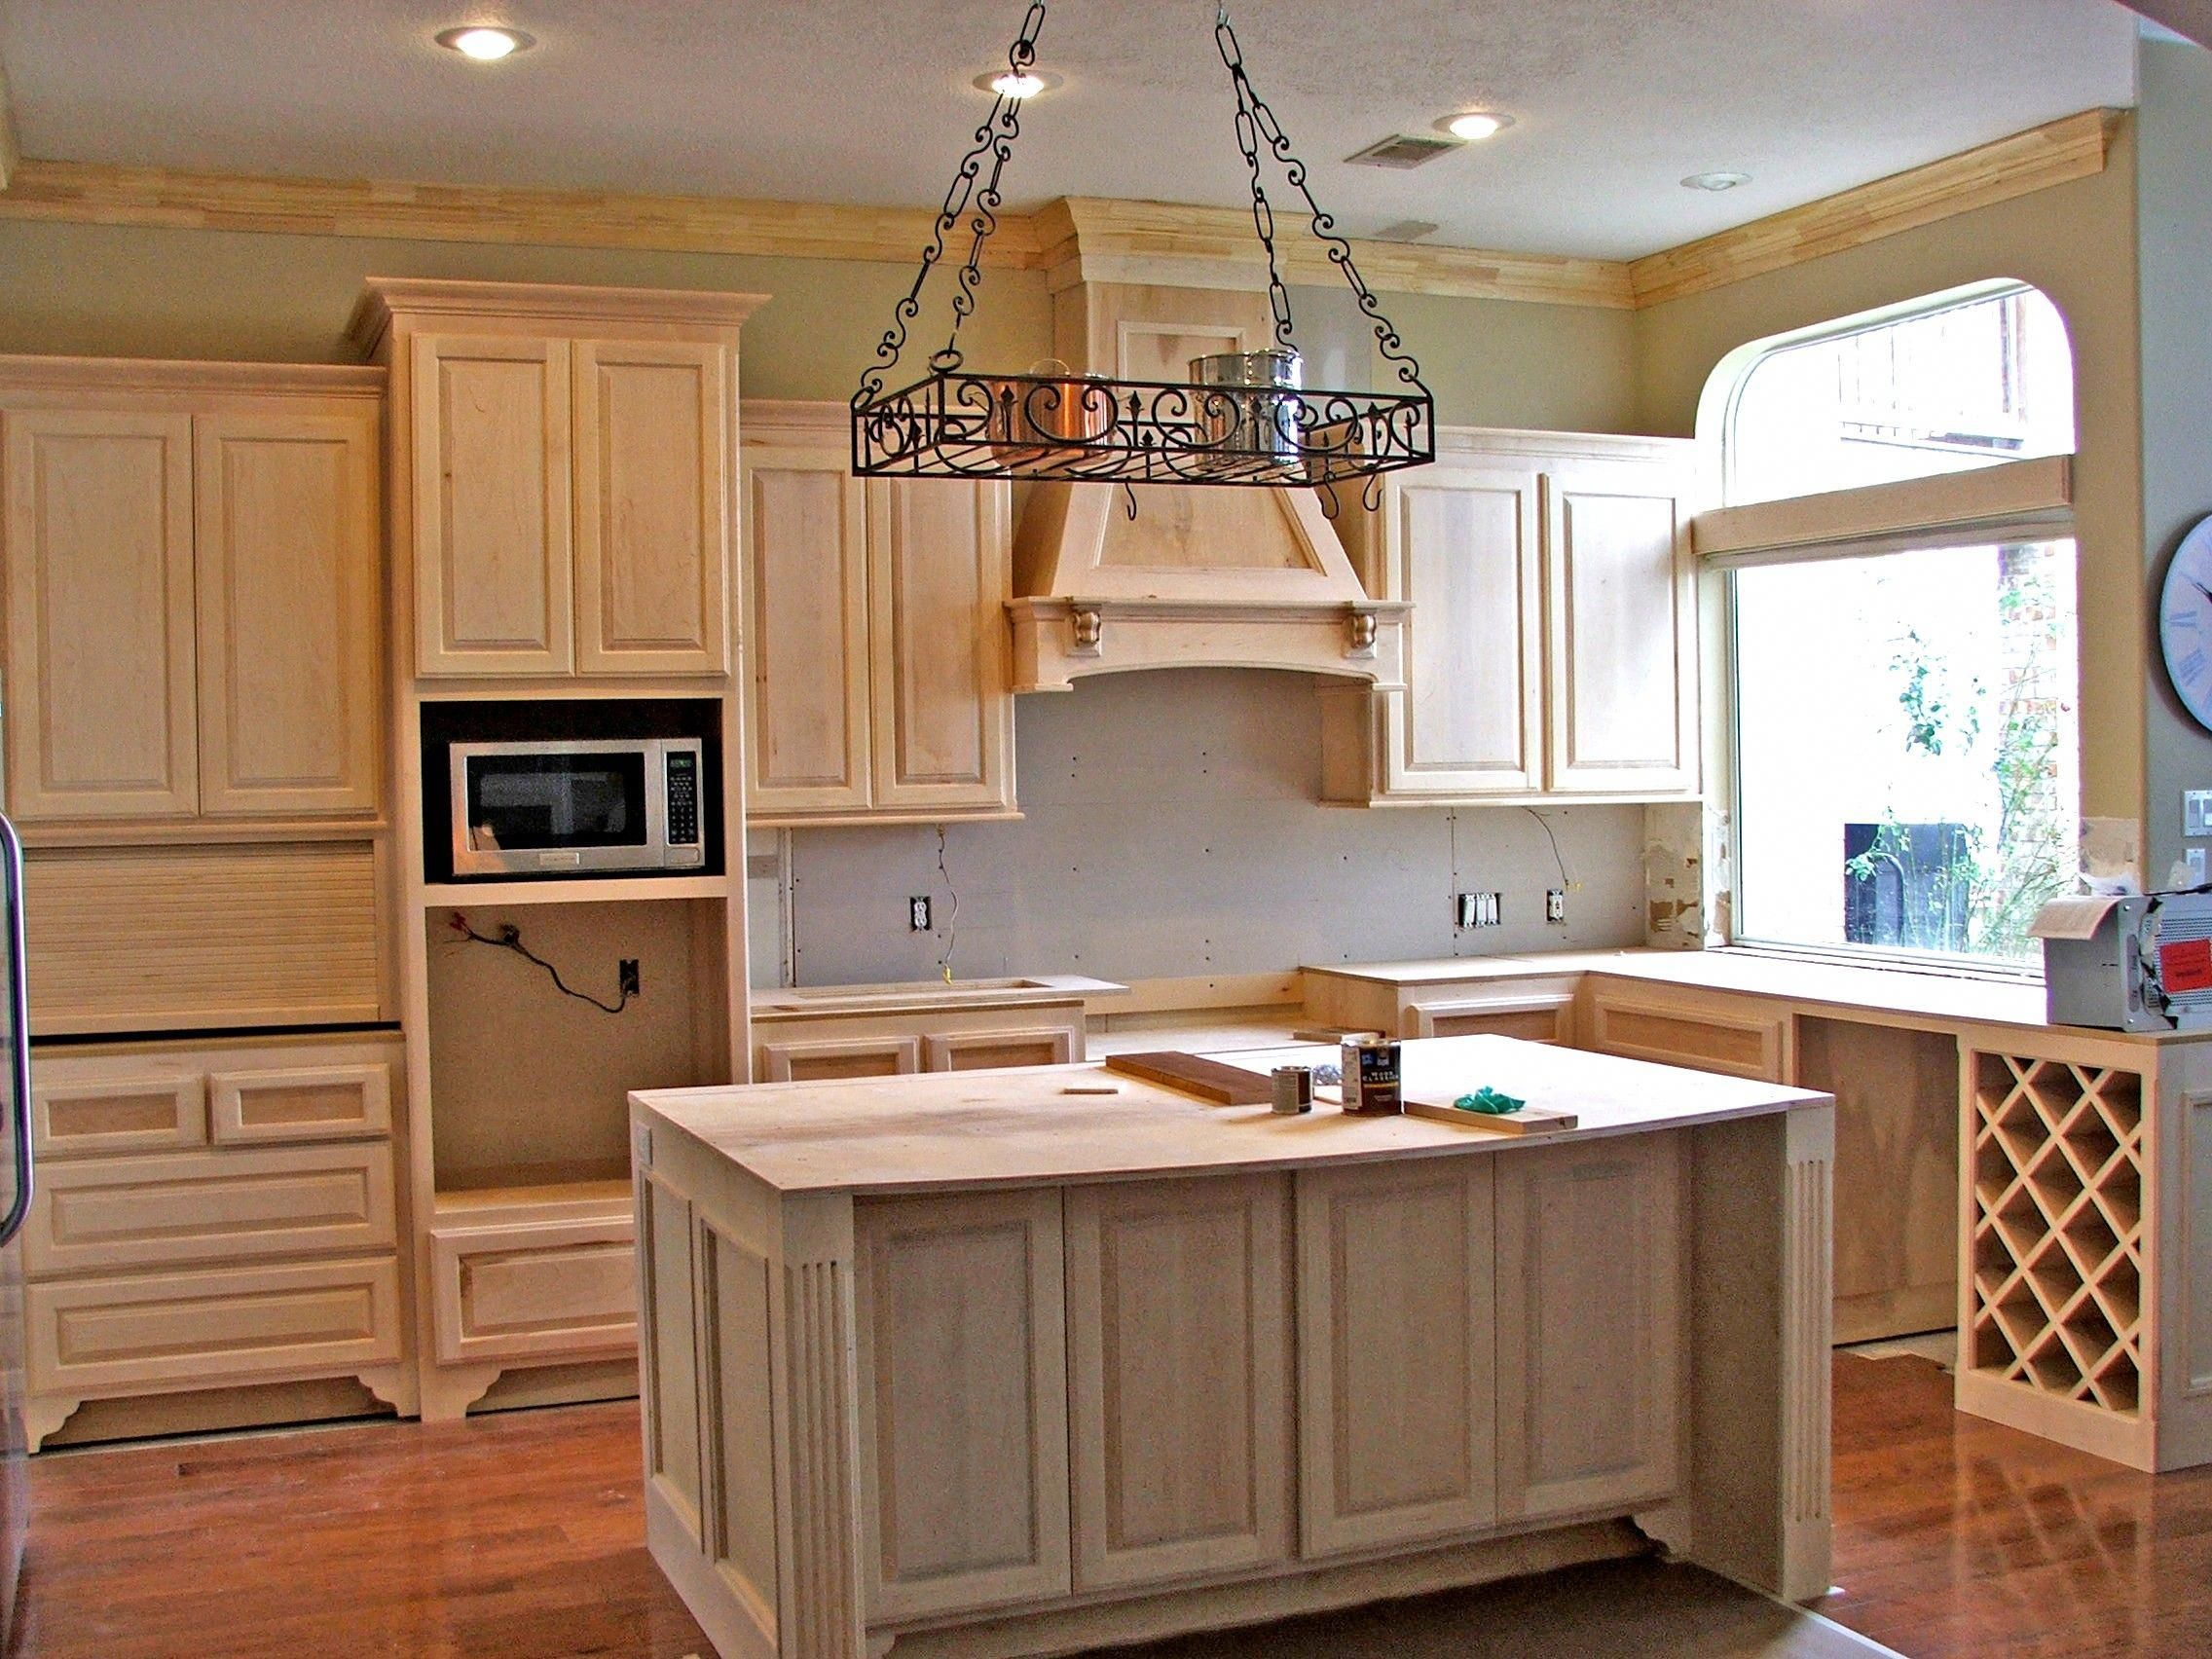 Renovate and relook kitchen shelves in 2020 | Unfinished ...